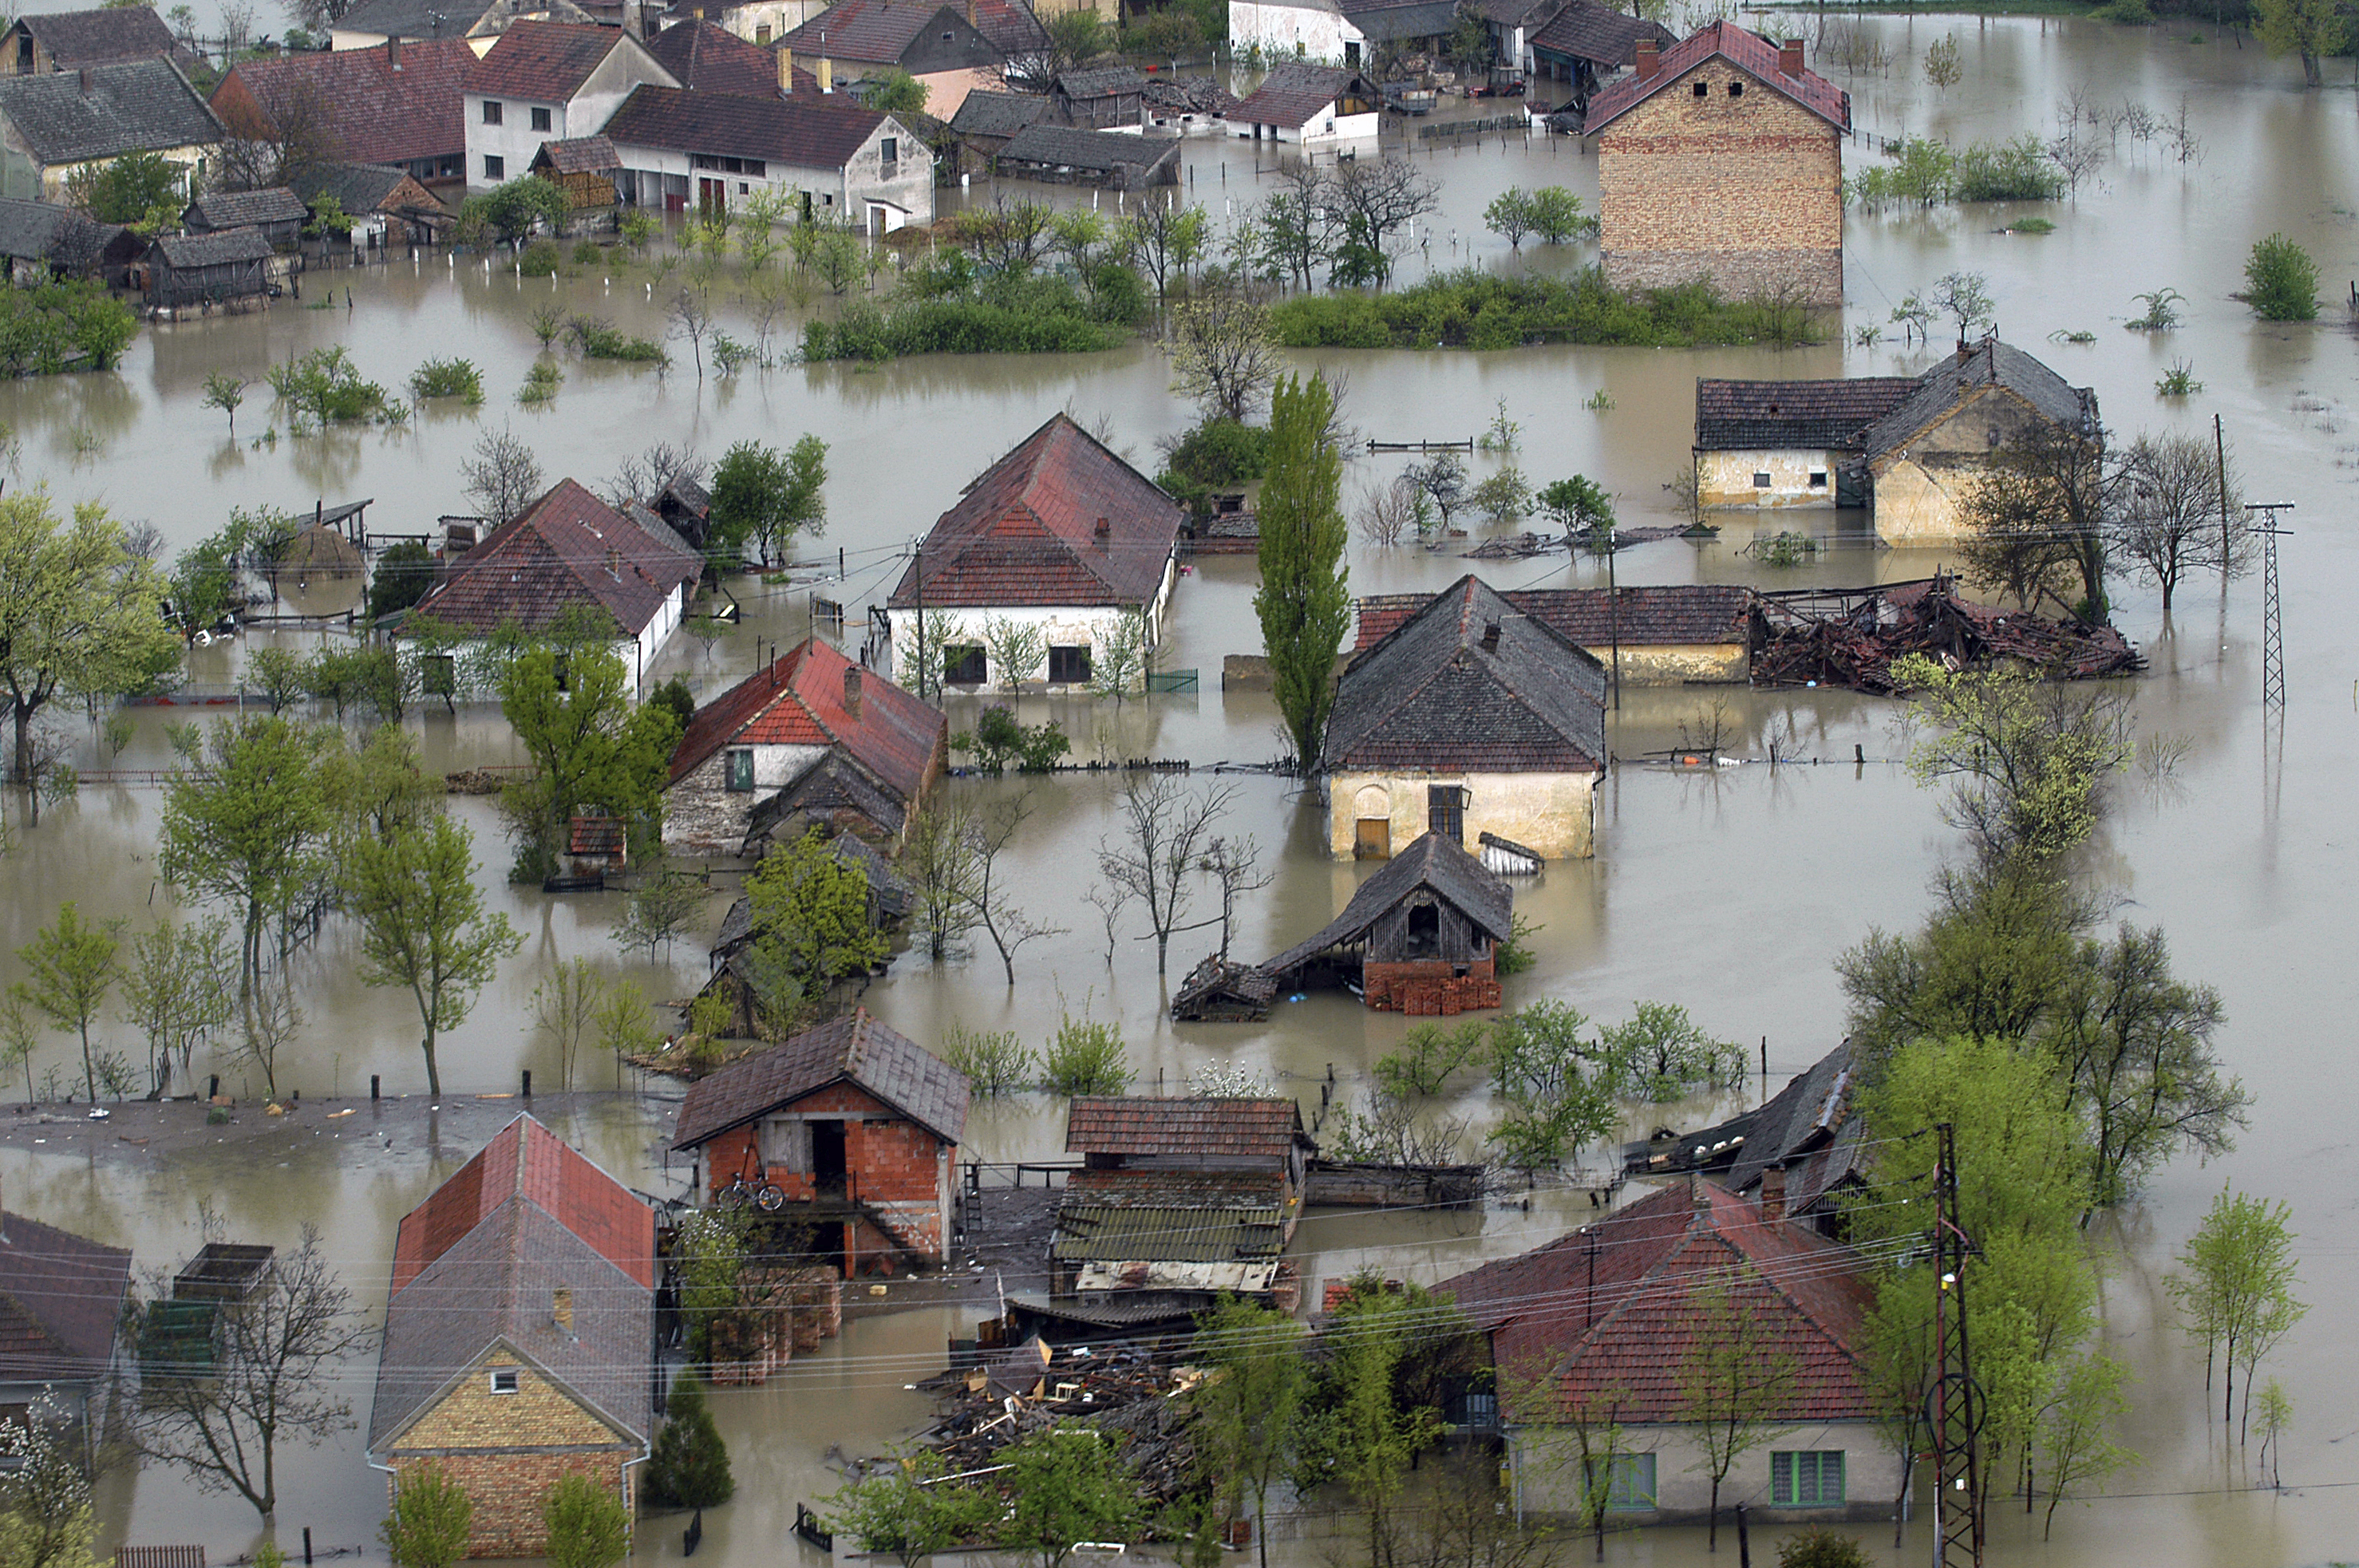 Flooded house aerial view